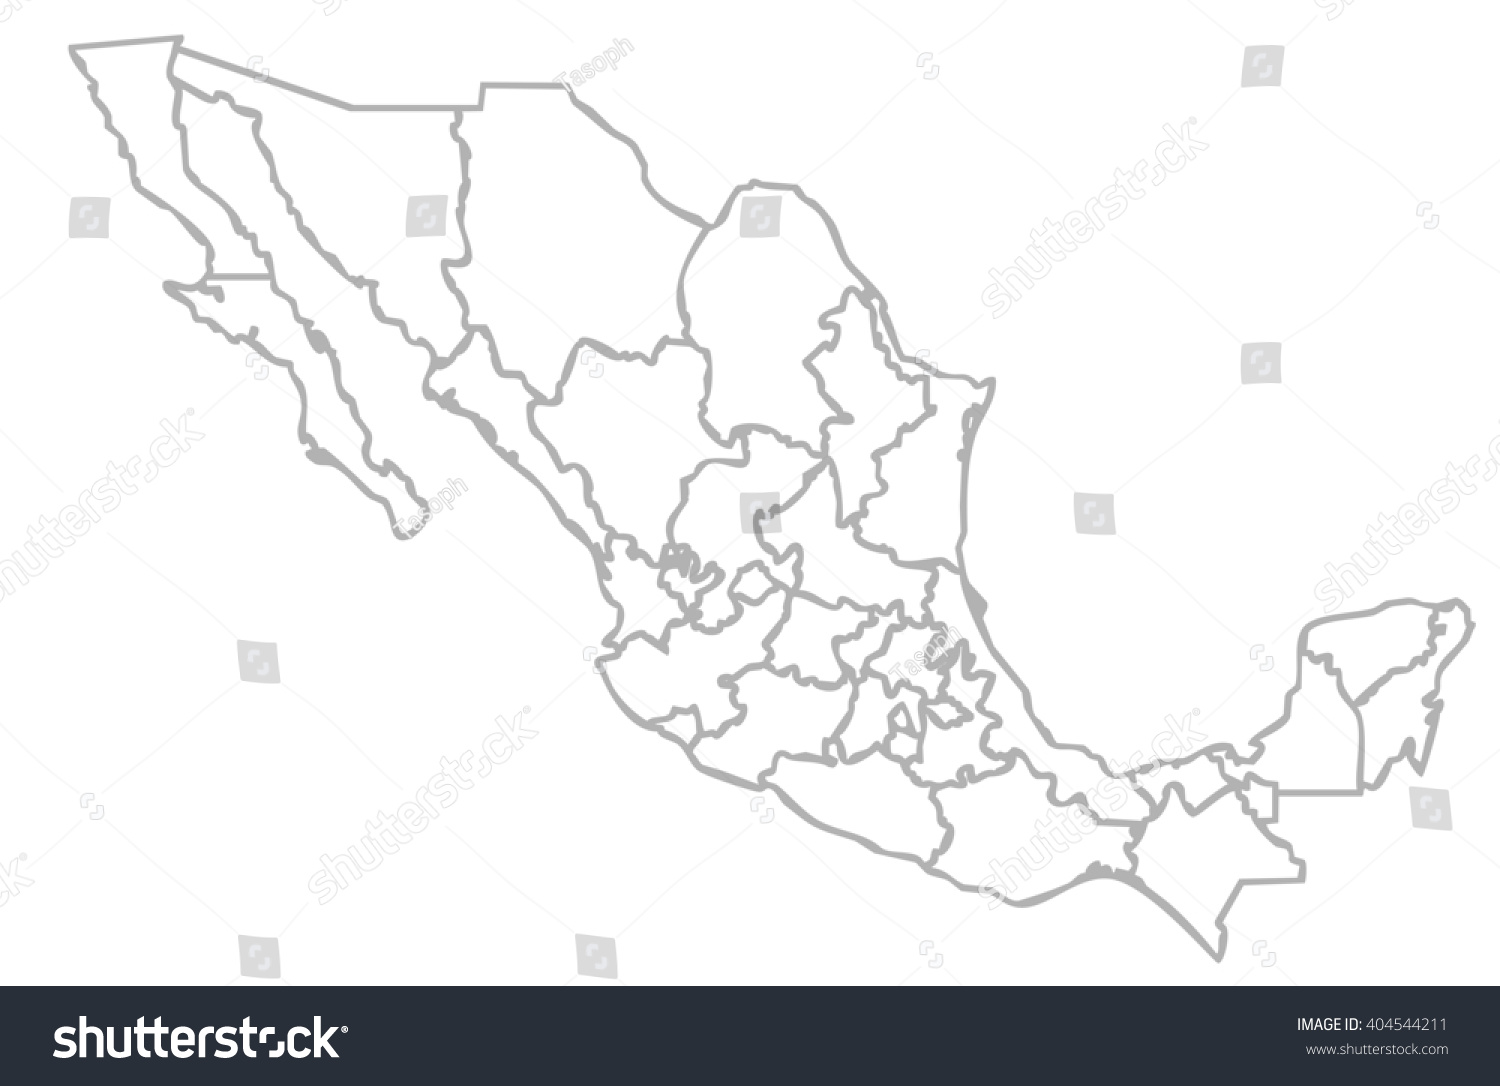 Isolated Political Mexican Map Mexico State Illustration – Mexicanmap